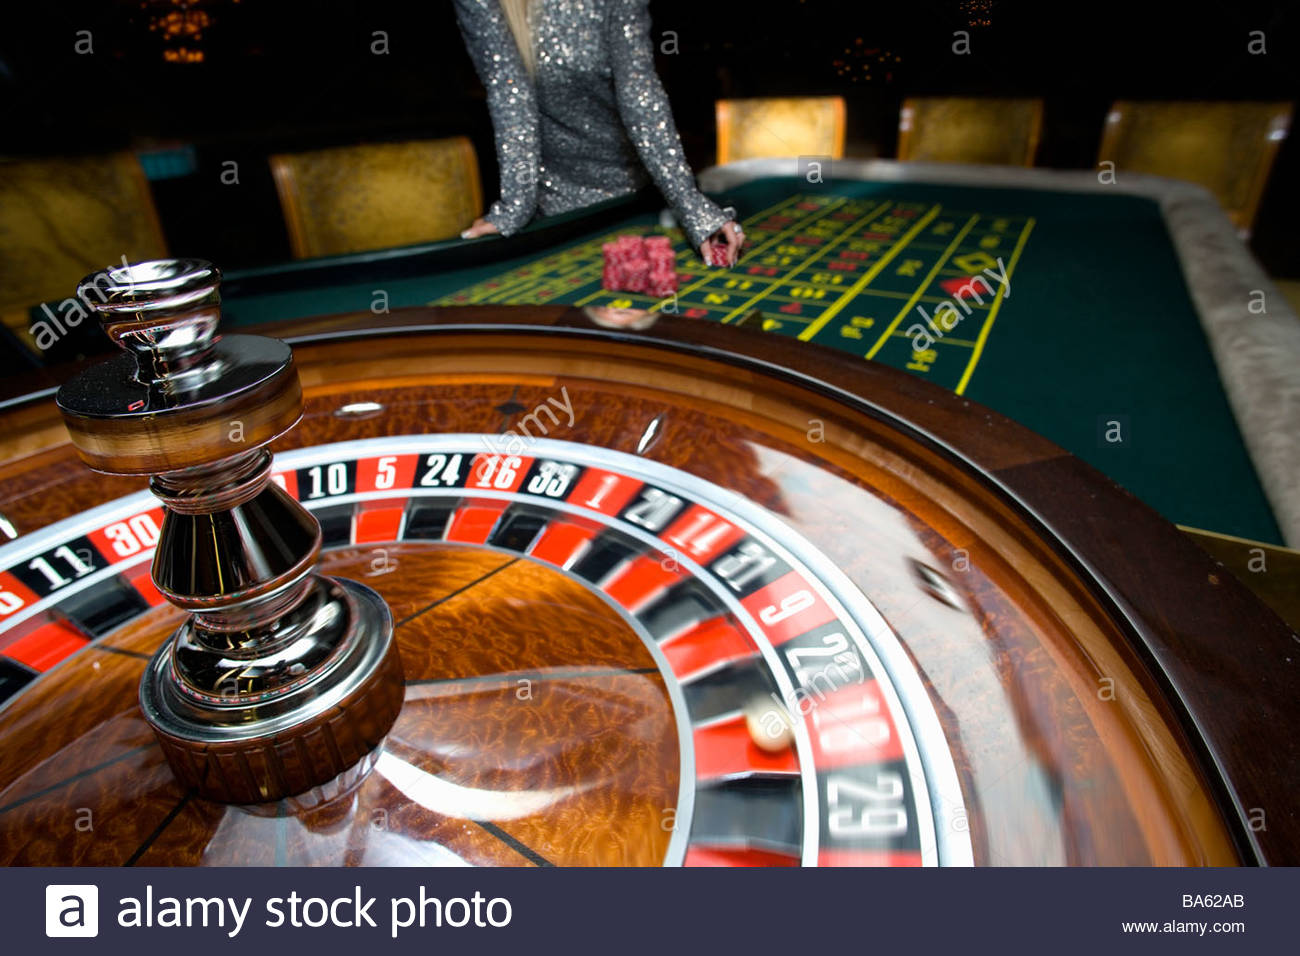 Woman gambling at roulette table, mid section - Stock Image